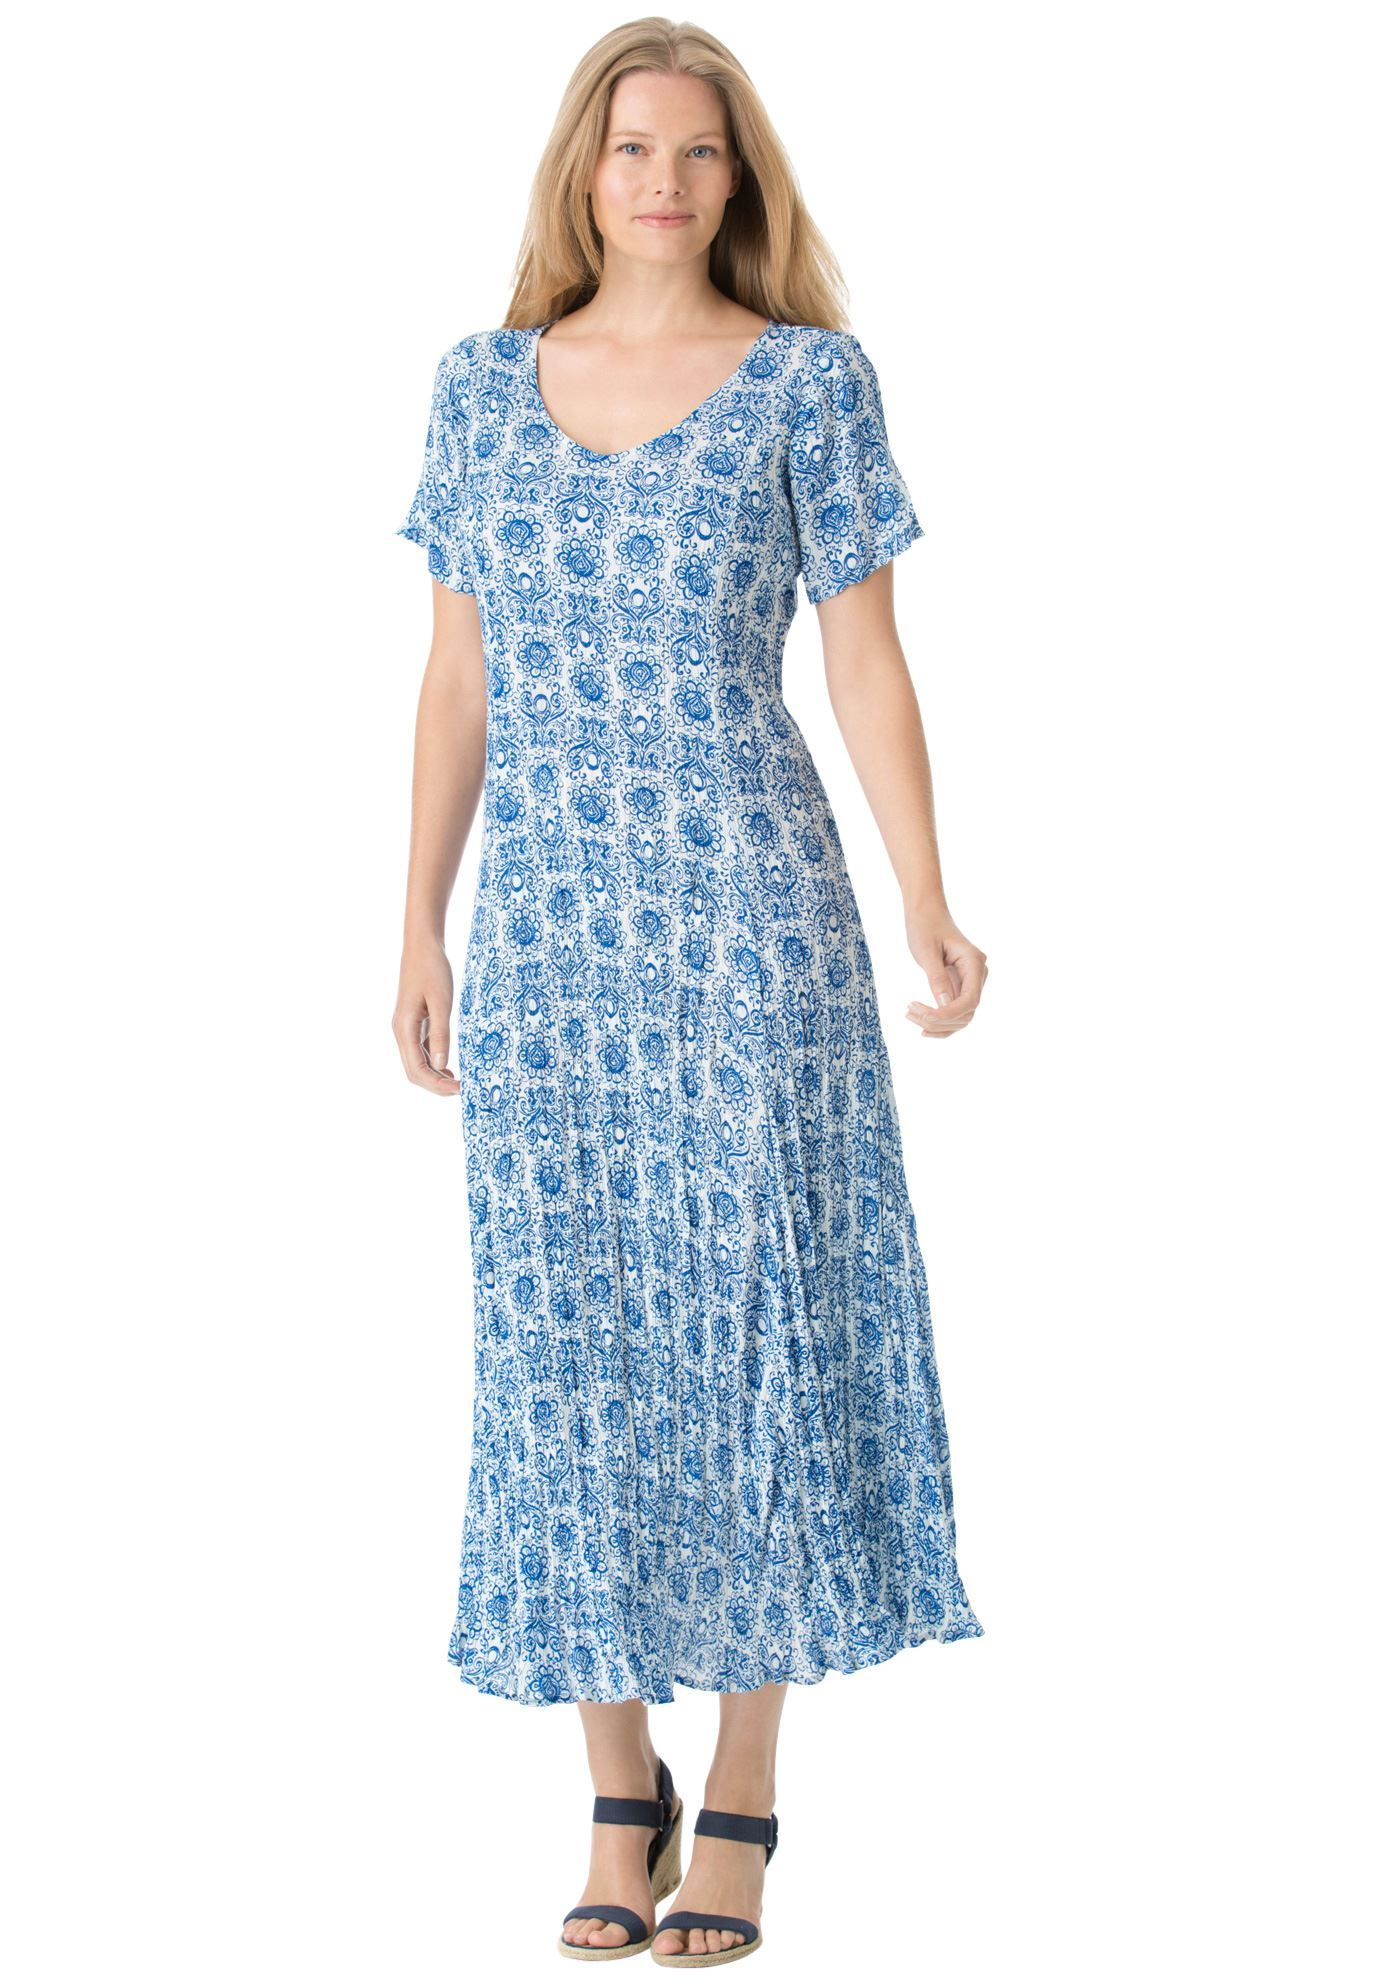 The spectacular texturerich crinkled rayon plus size dress looks